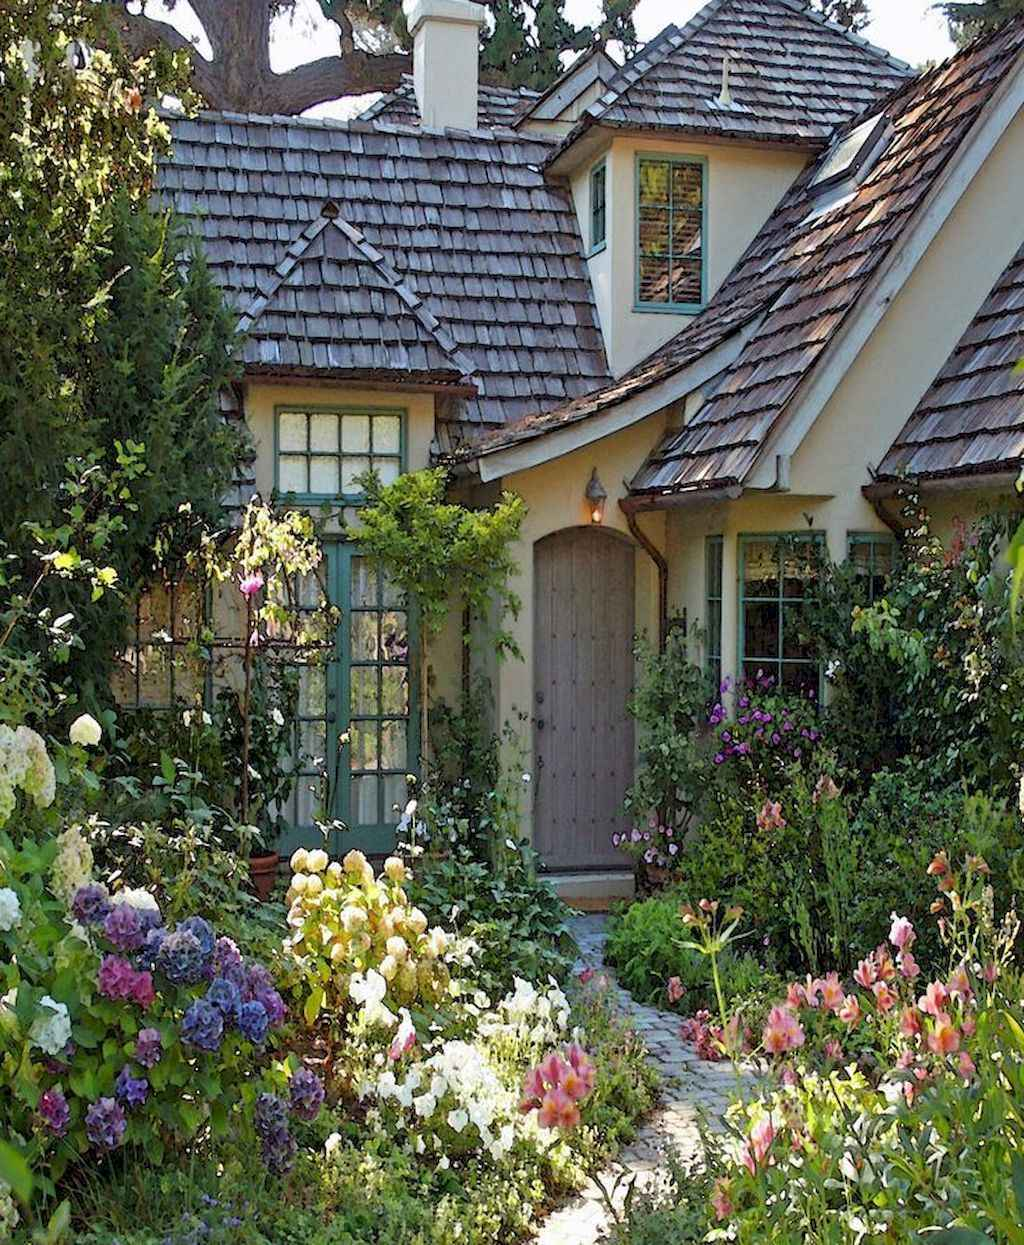 Landscaping Ideas For Small Front Yards: 60 Low Maintenance Small Front Yard Landscaping Ideas